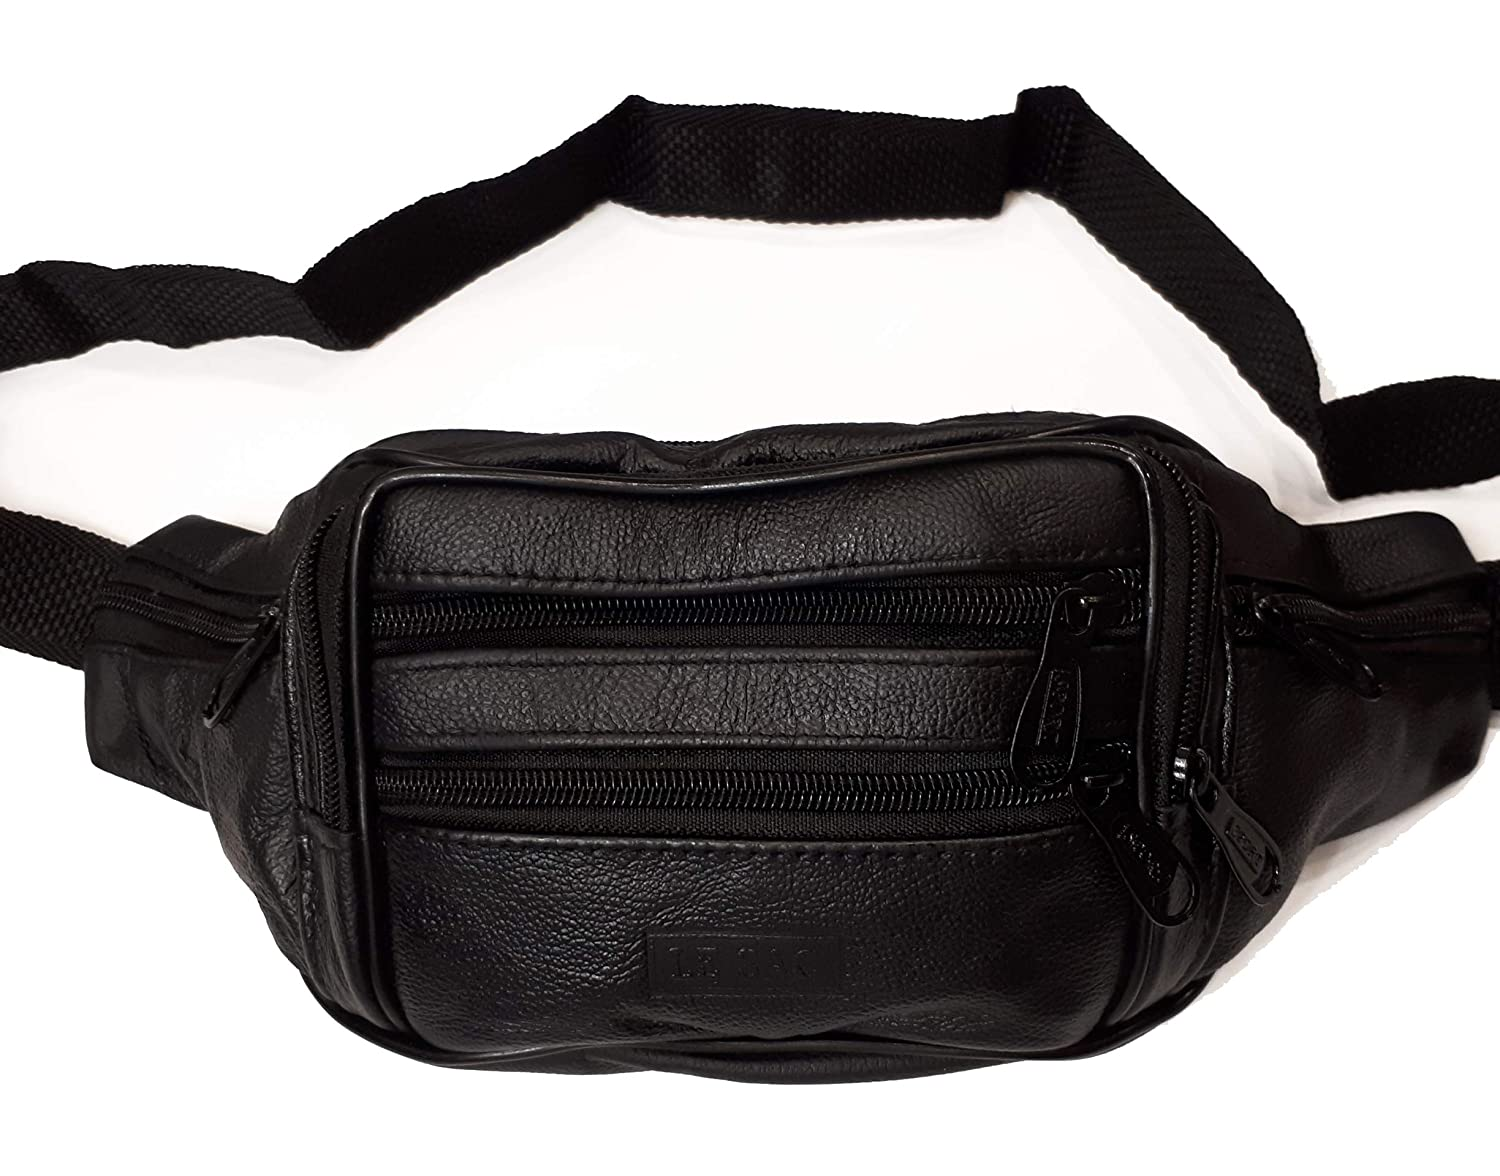 Fanny Pack Waist Pack Money Belt Pouch Leather for Travel Work and Sports 329